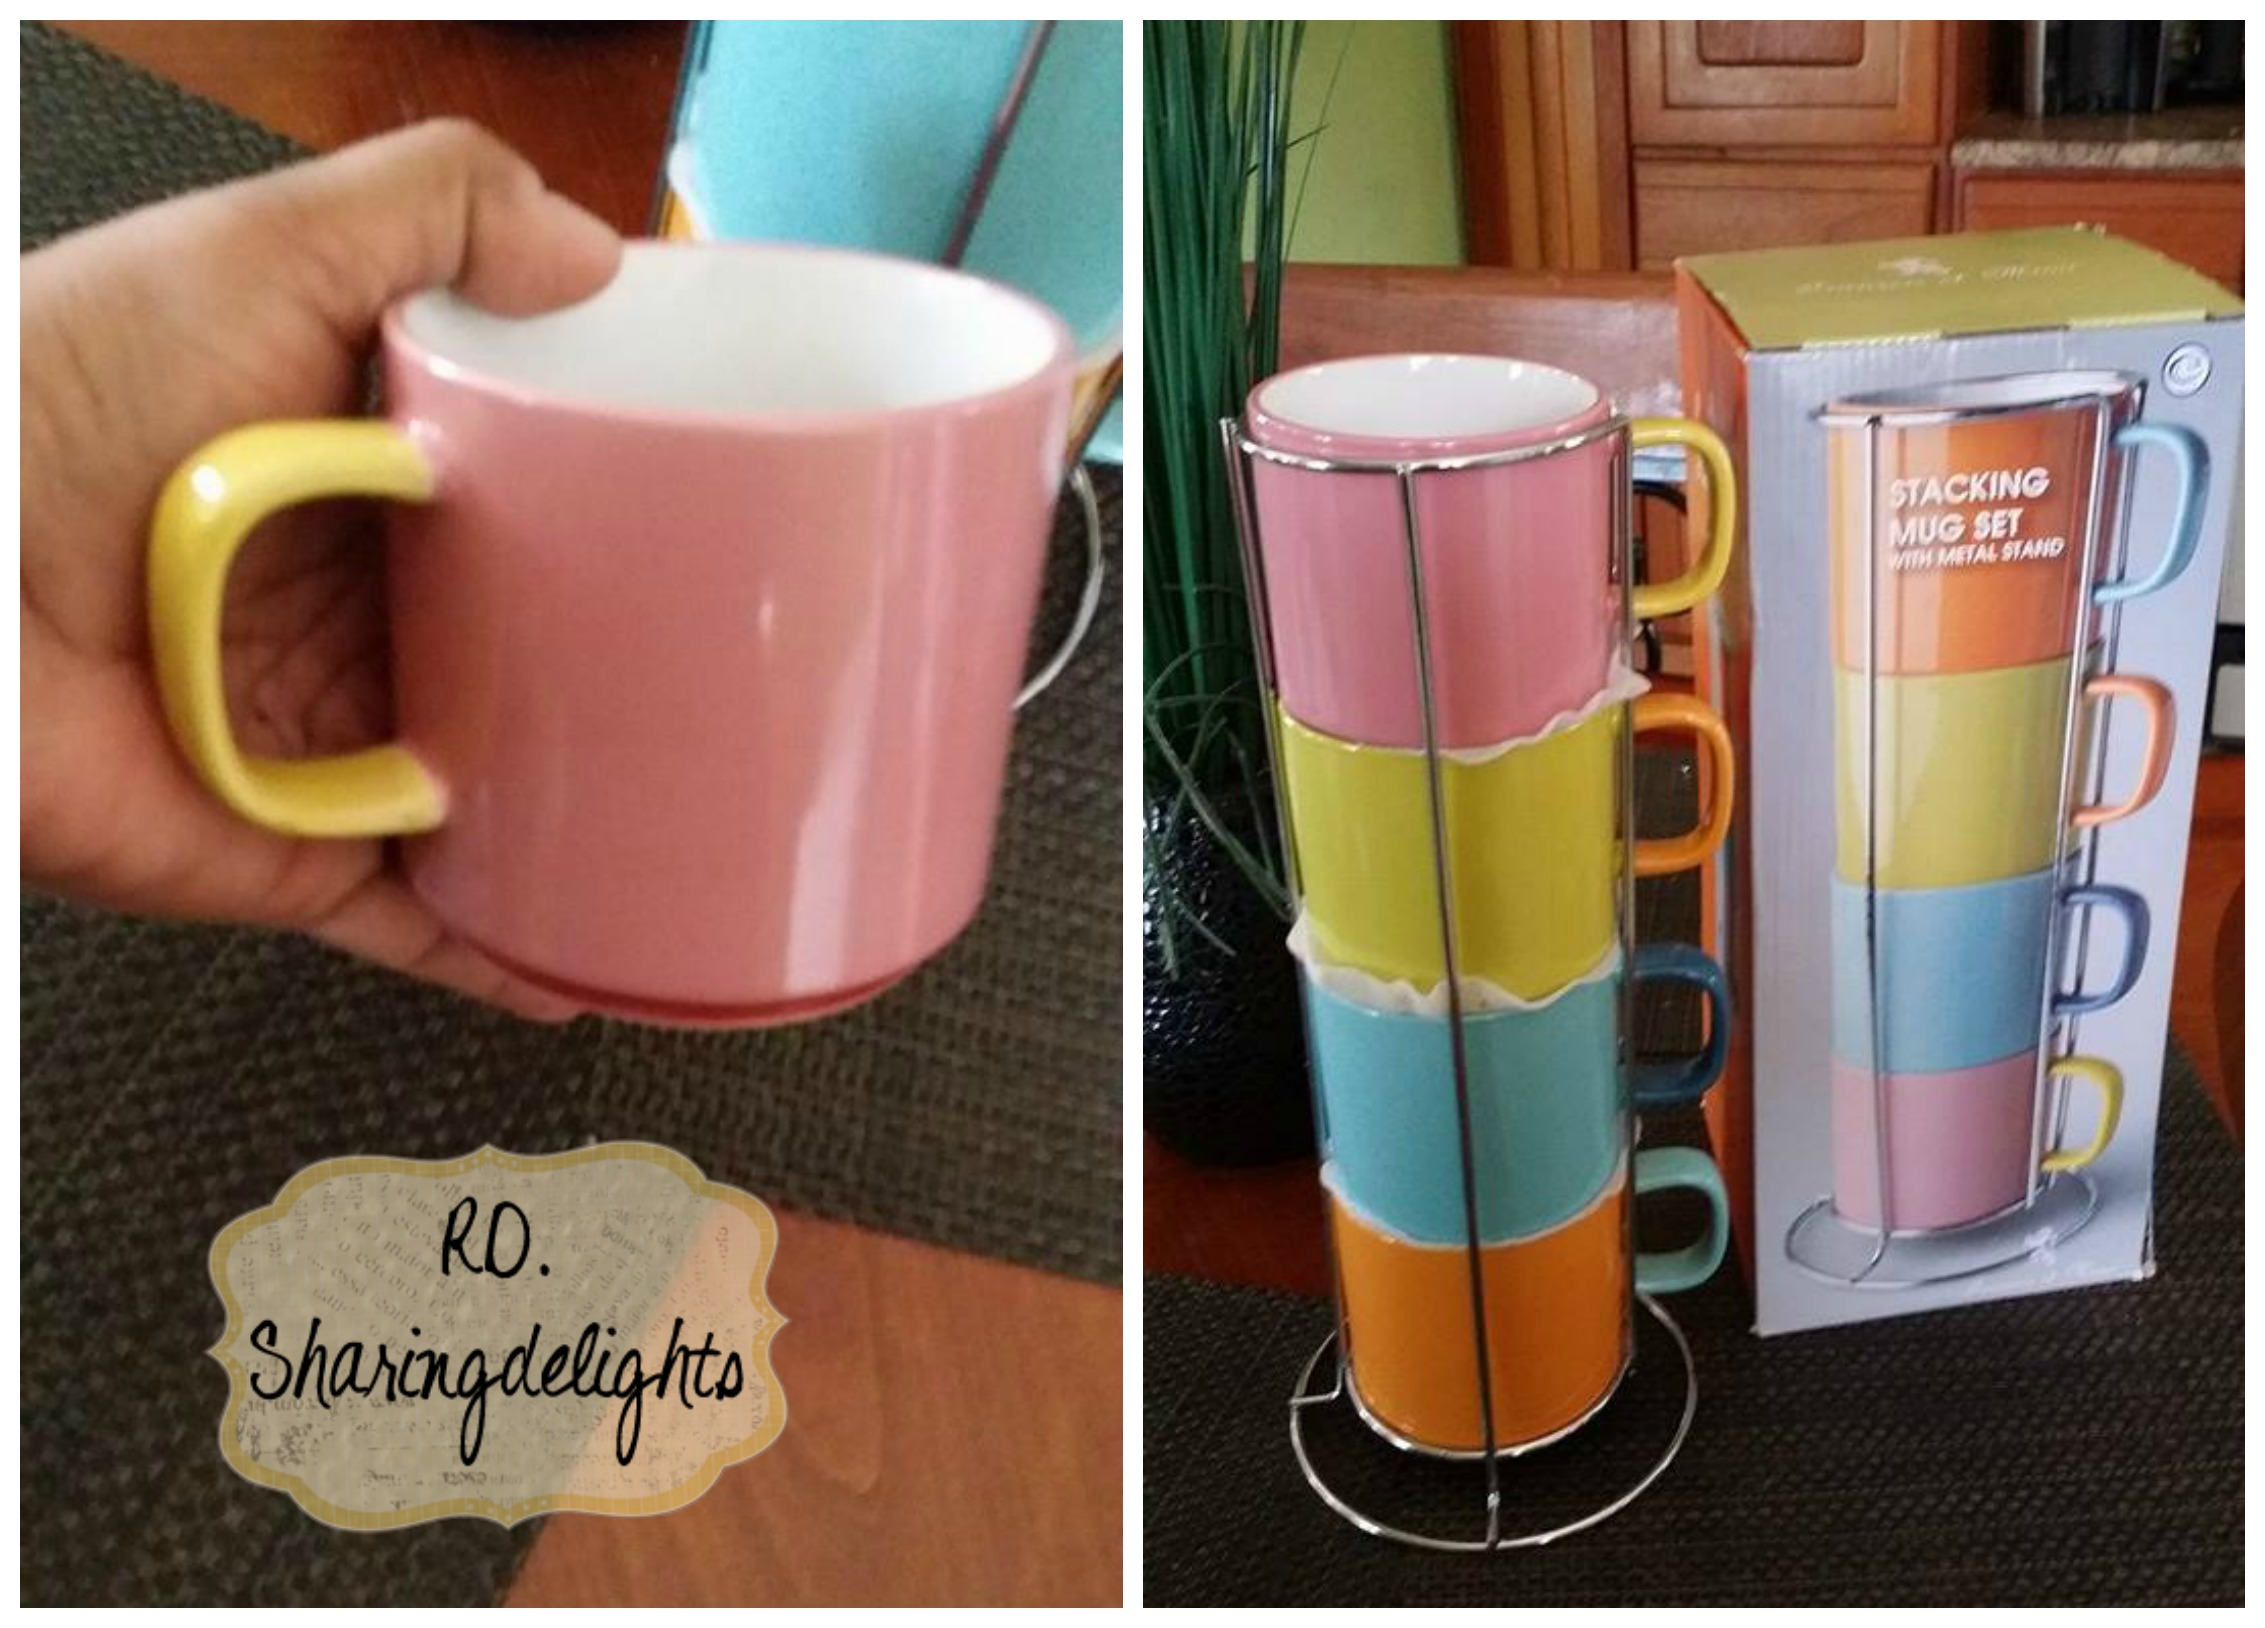 Top Francois et Mimi Stacking Mug Set with Rack Review | DF73